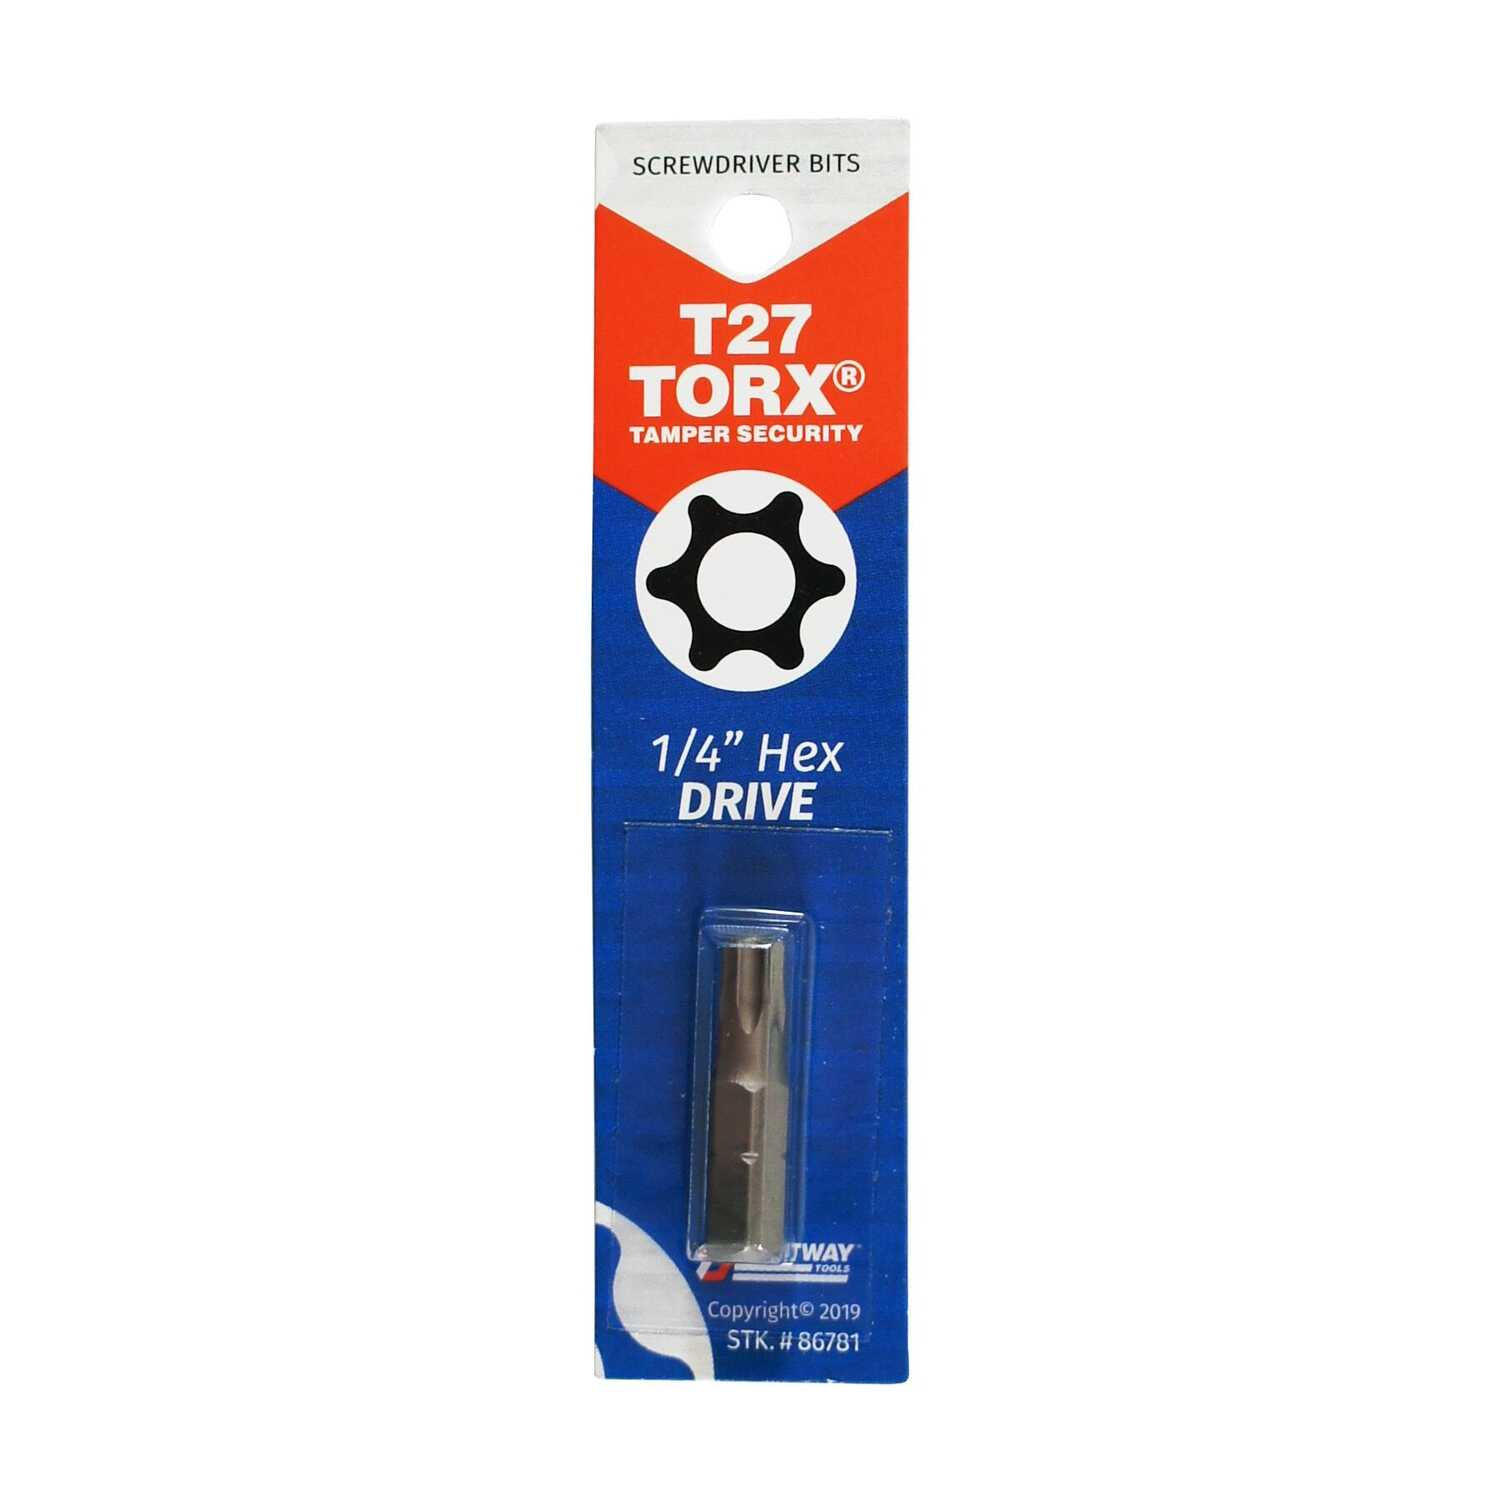 Best Way Tools  TORX  TORX Tamperproof Bit  T27   x 1 in. L Screwdriver Bit  1/4 in. Hex  1 pc.